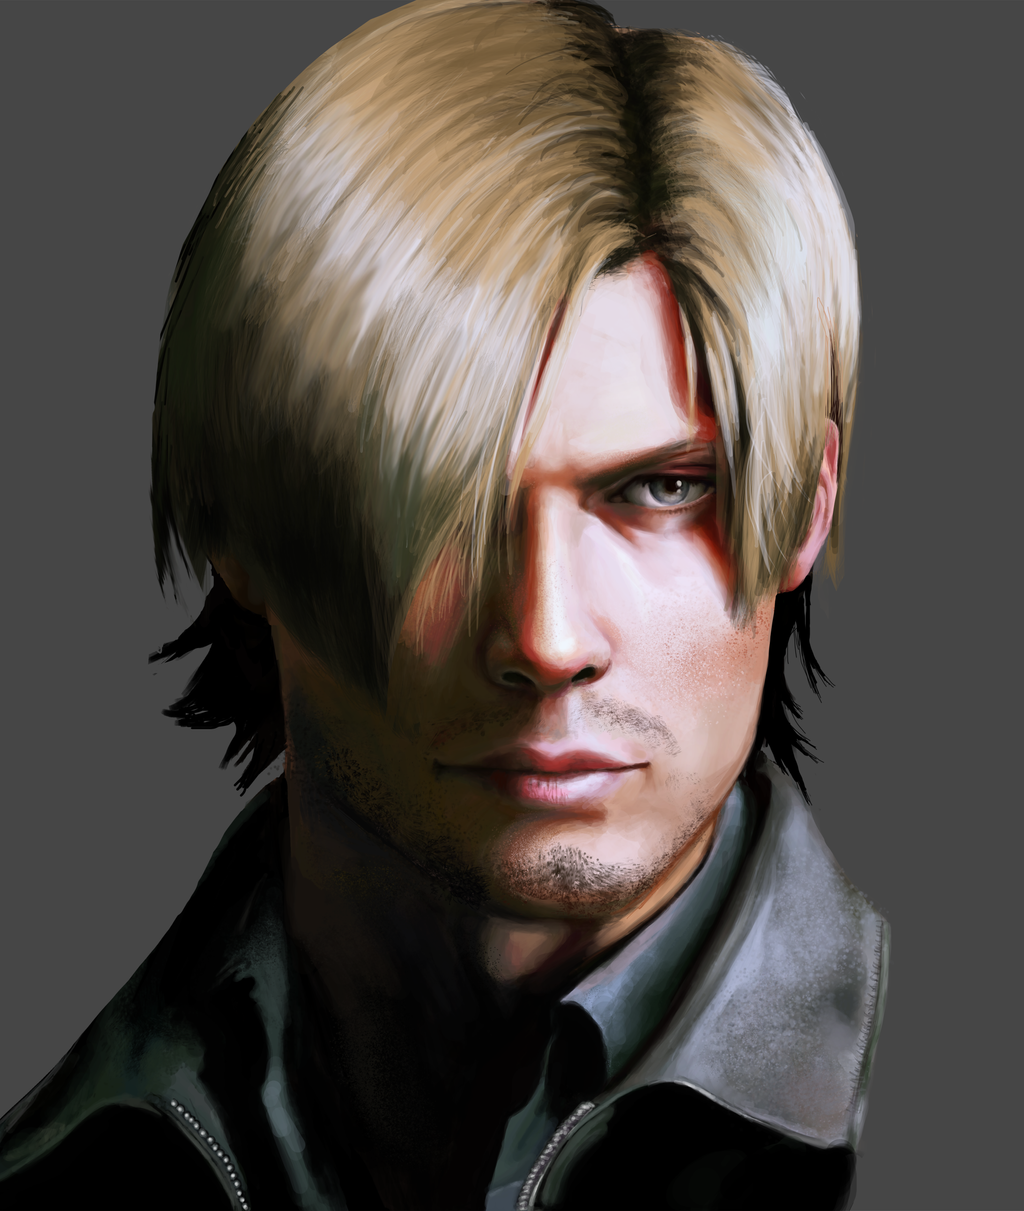 Leon Scott Kennedy Resident Evil 6 By Alinalarae On Deviantart